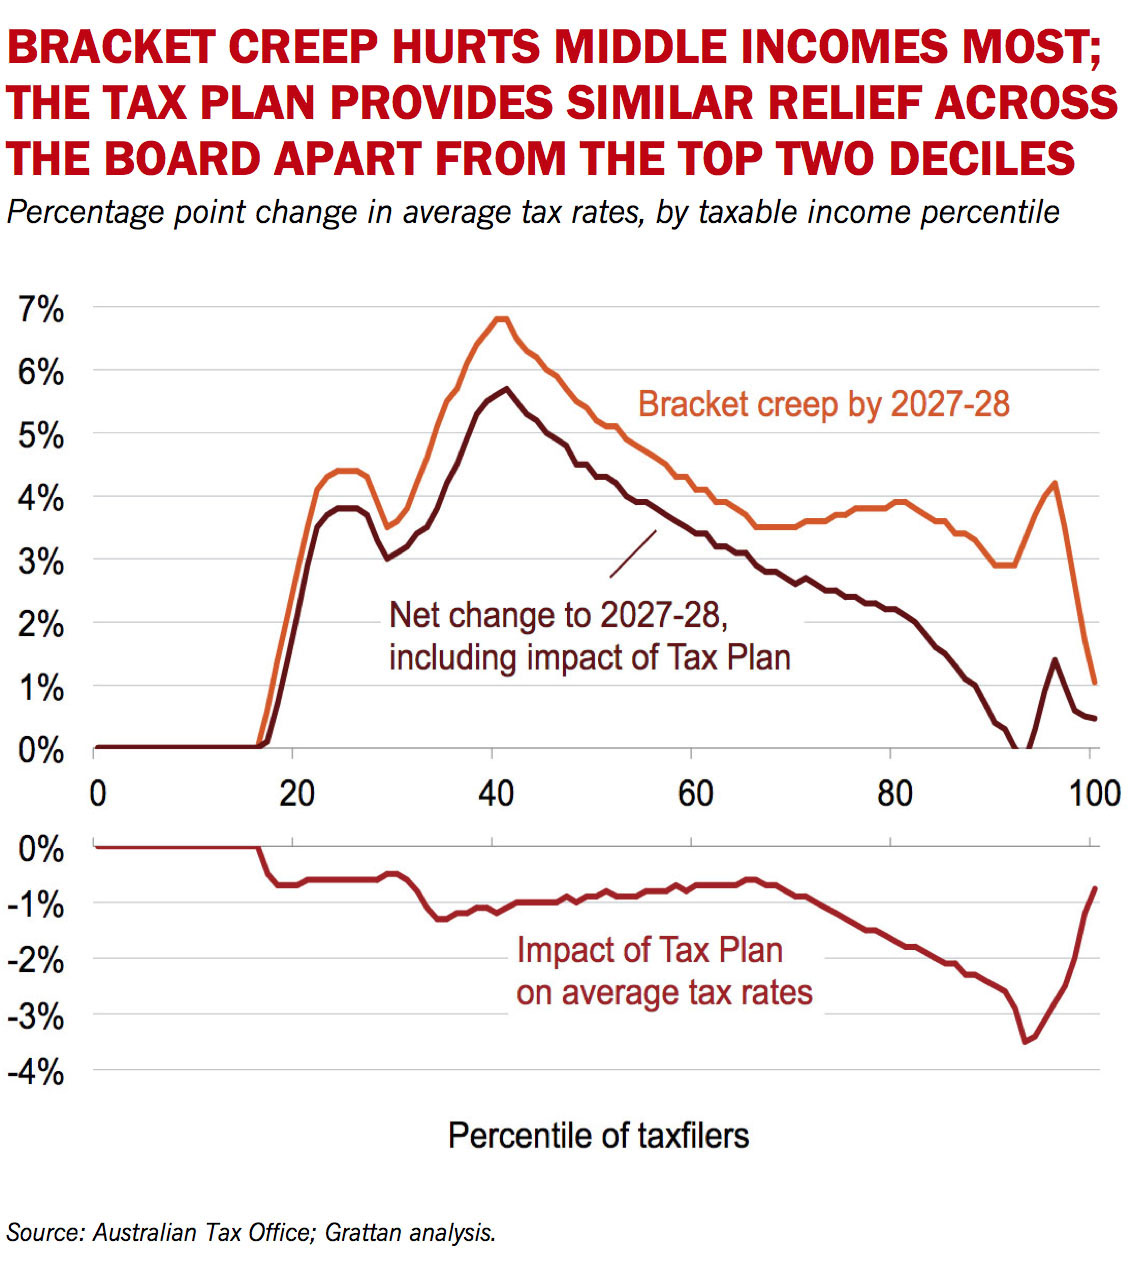 For Taxpayers Between The Seventieth And One Hundredth Percentile Bracket Creep Would Typically Only Increase Average Tax Rates By About 3 Percentage